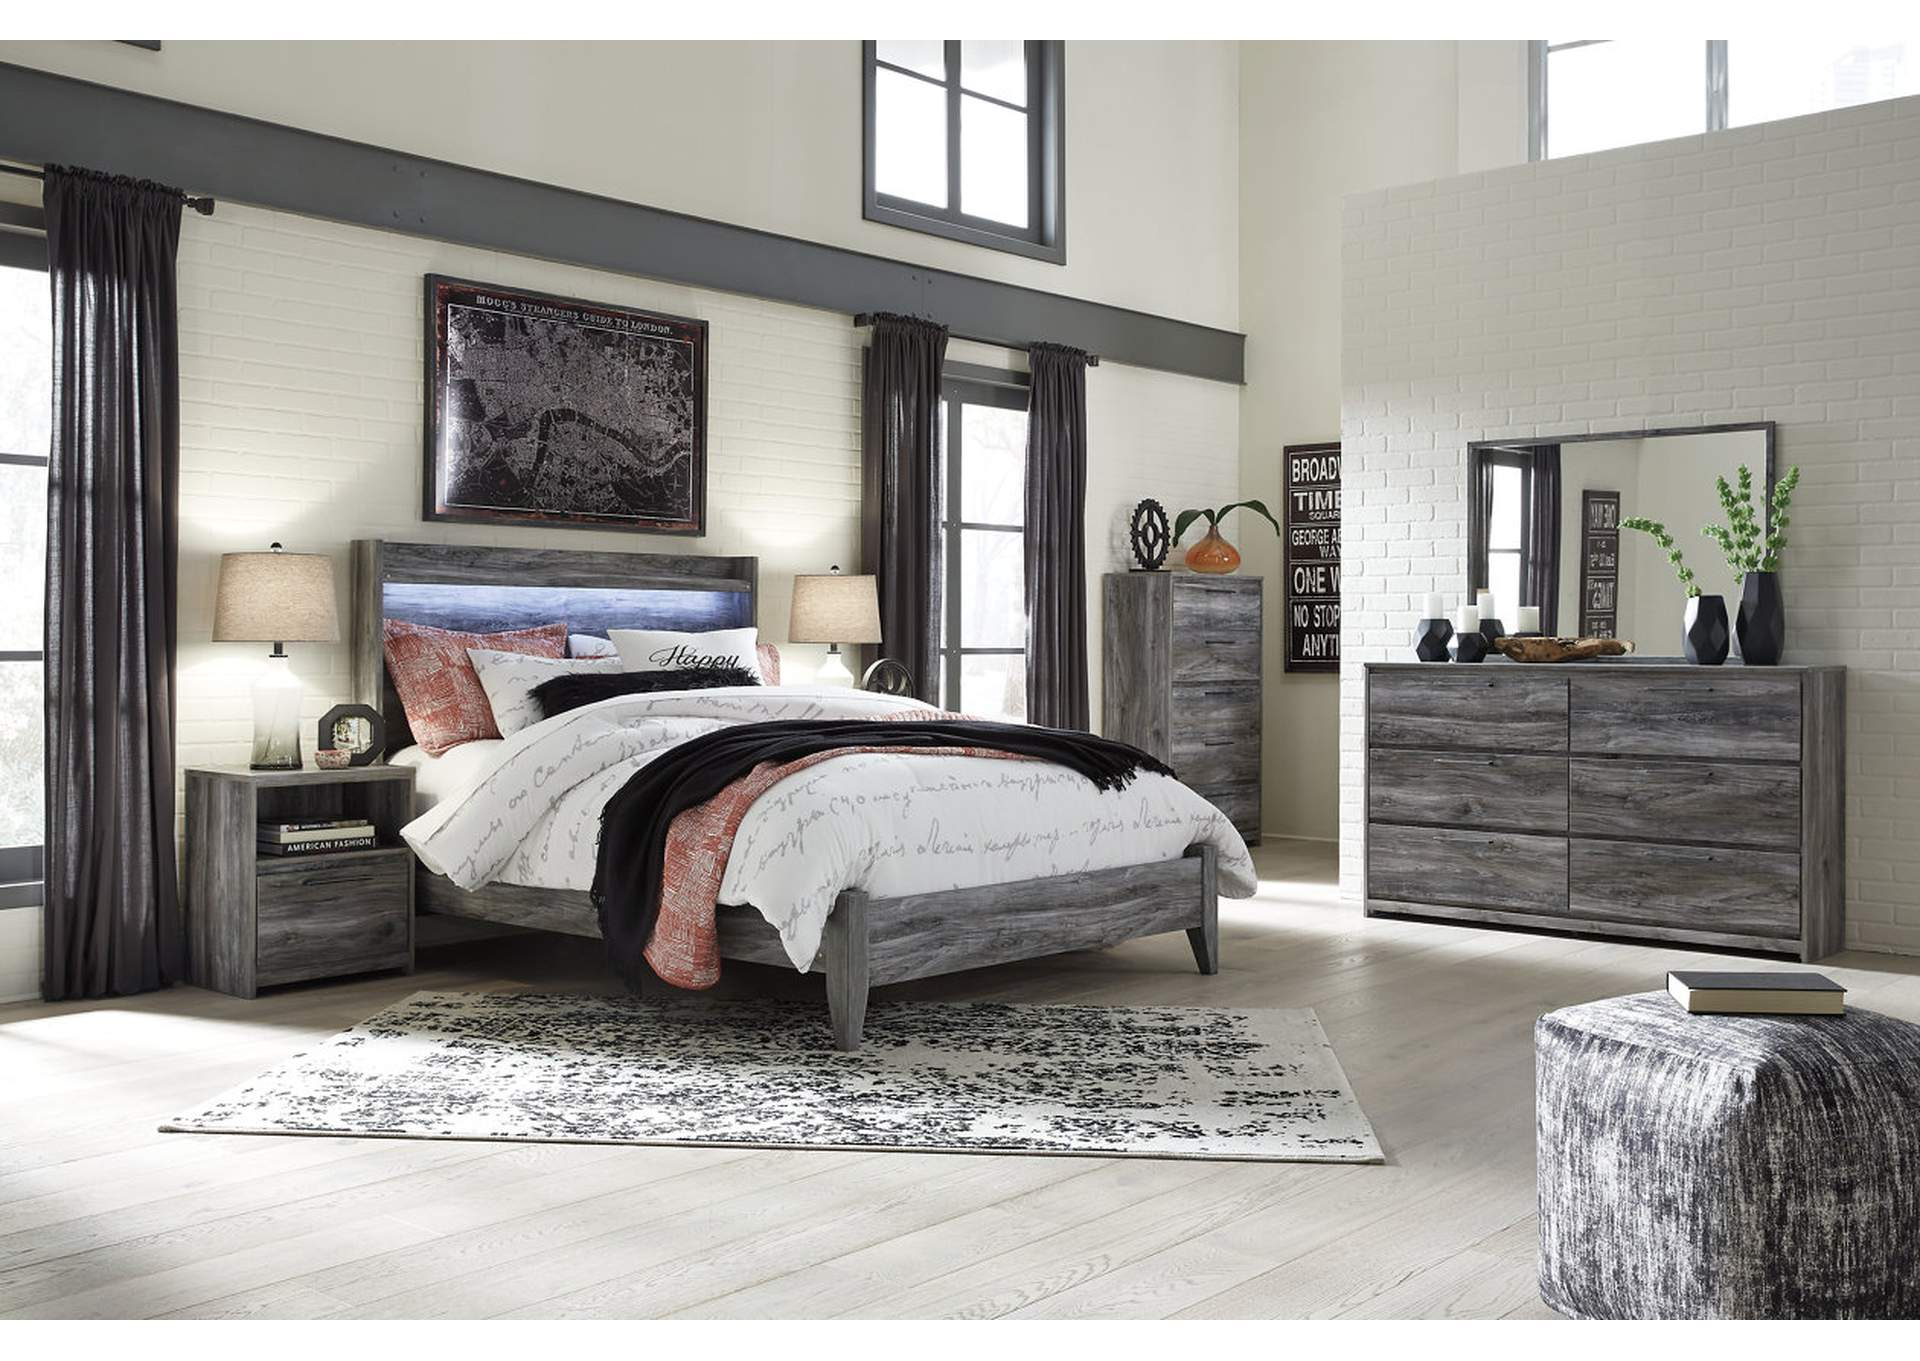 Baystorm Gray Queen Panel Bed w/Dresser, Mirror, Drawer Chest & Nightstand,Signature Design By Ashley